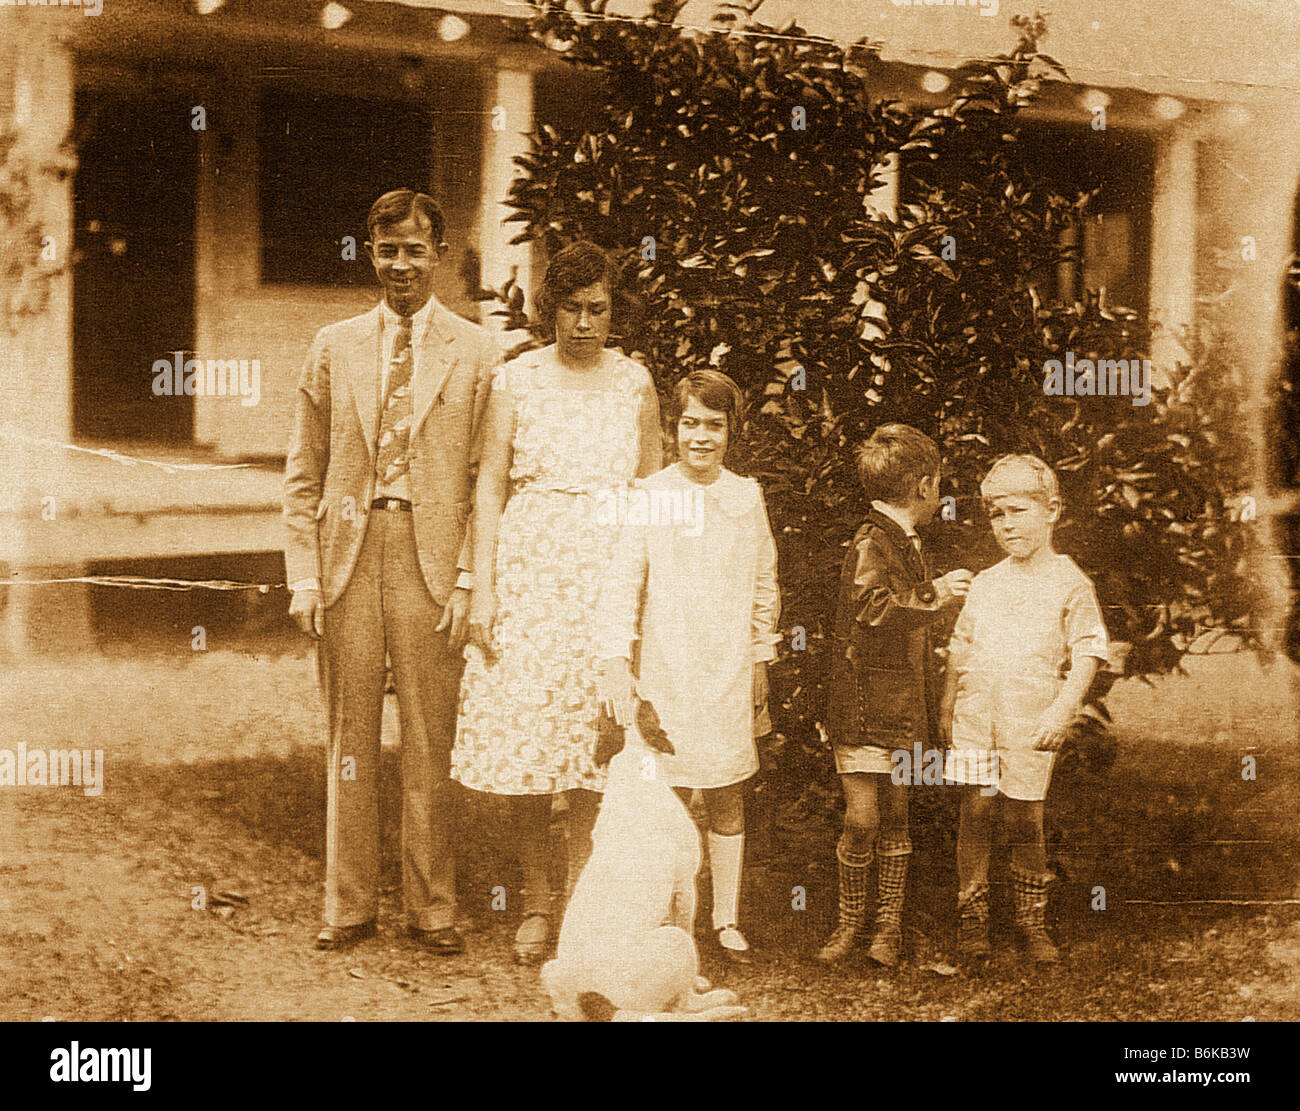 Retro photo de famille et chien vers 1927 Photo Stock